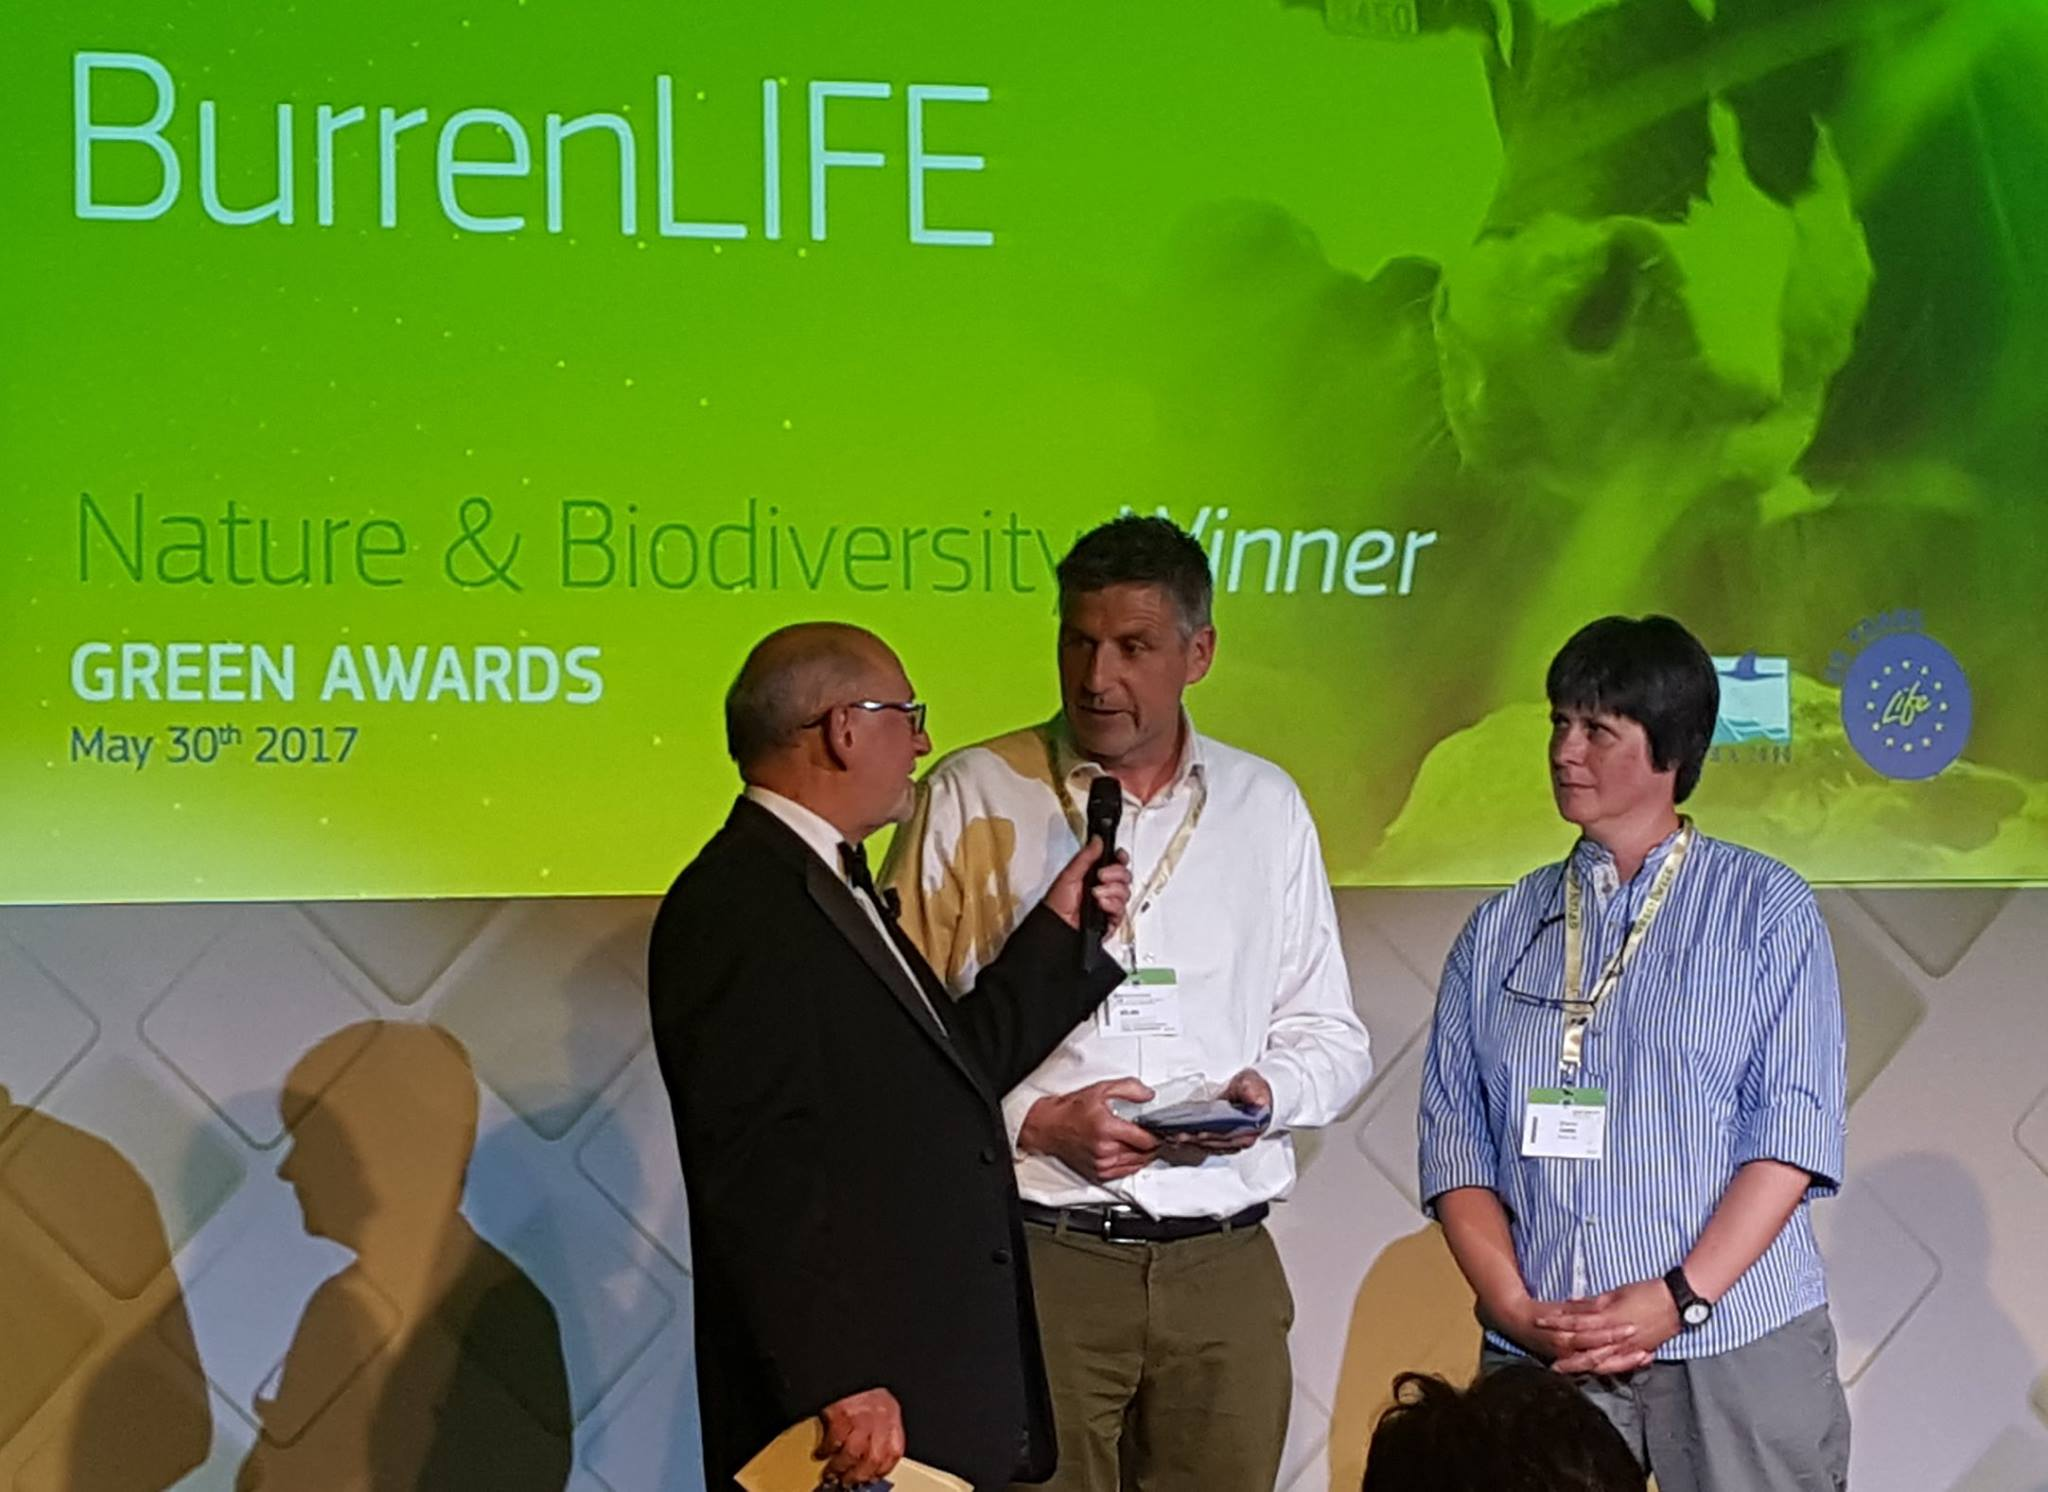 The Burren Programme won the prestigious EU Green Award in 2017 for its work in nature and biodiversity from among 4300 projects. Photo: Burrenbeo Trust